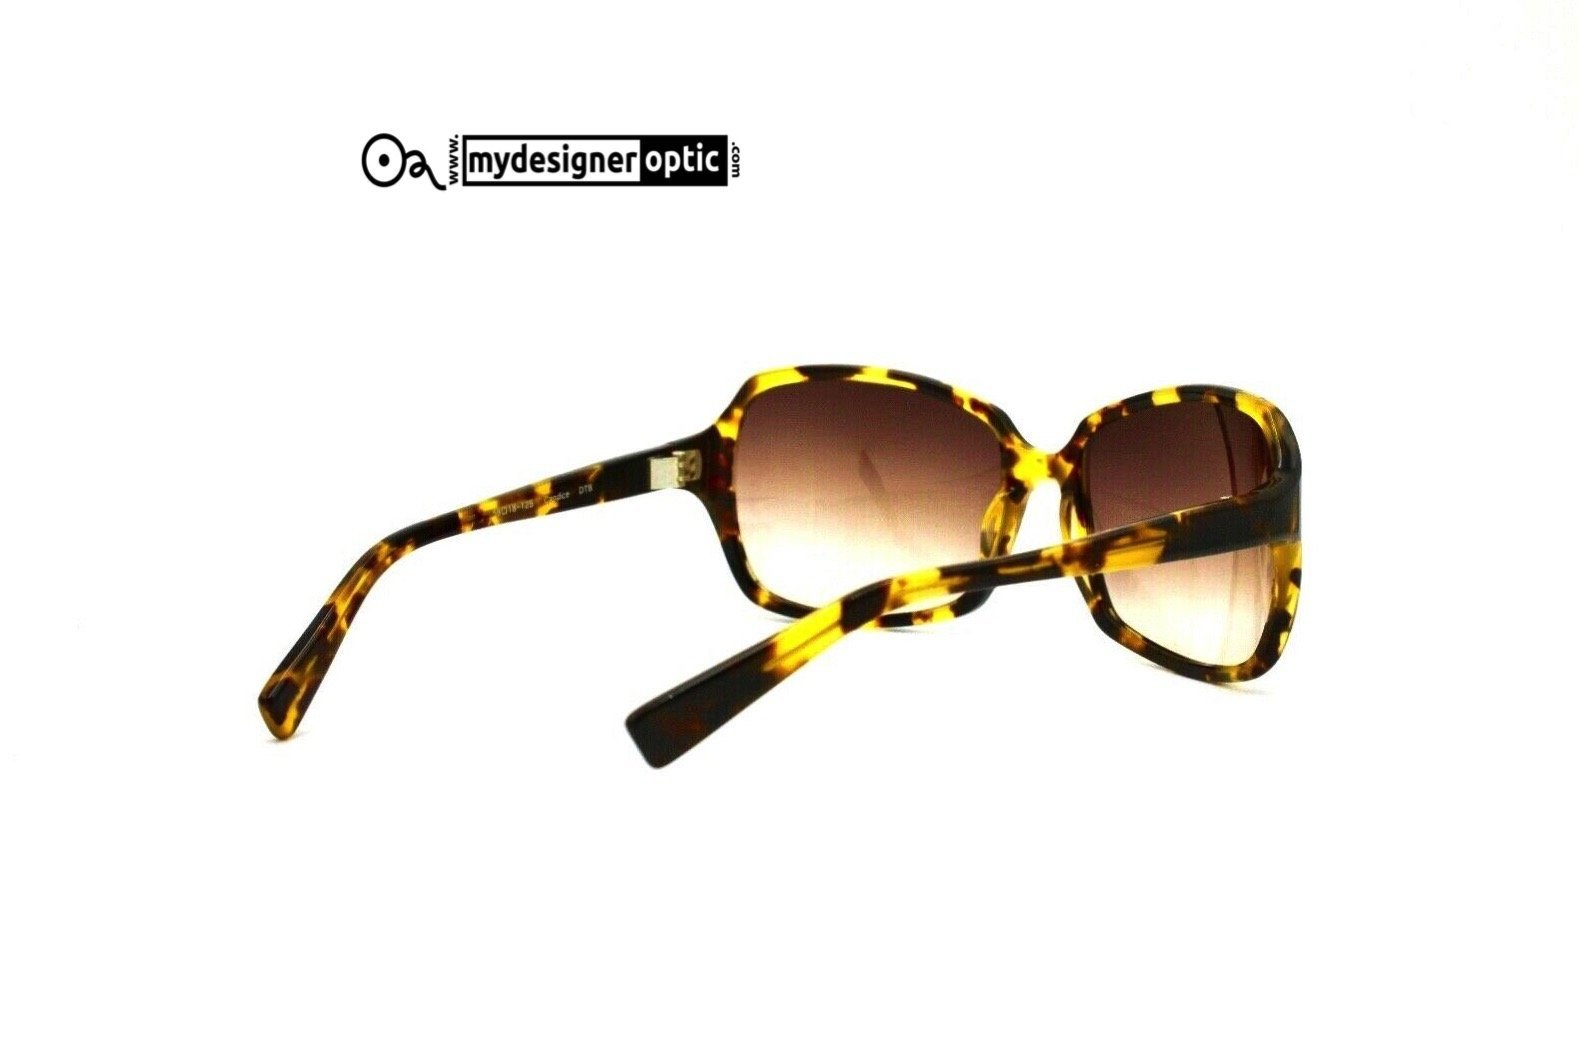 Oliver Peoples Sunglasses 59-18-125 Candice DTB Made in Japan - Mydesigneroptic